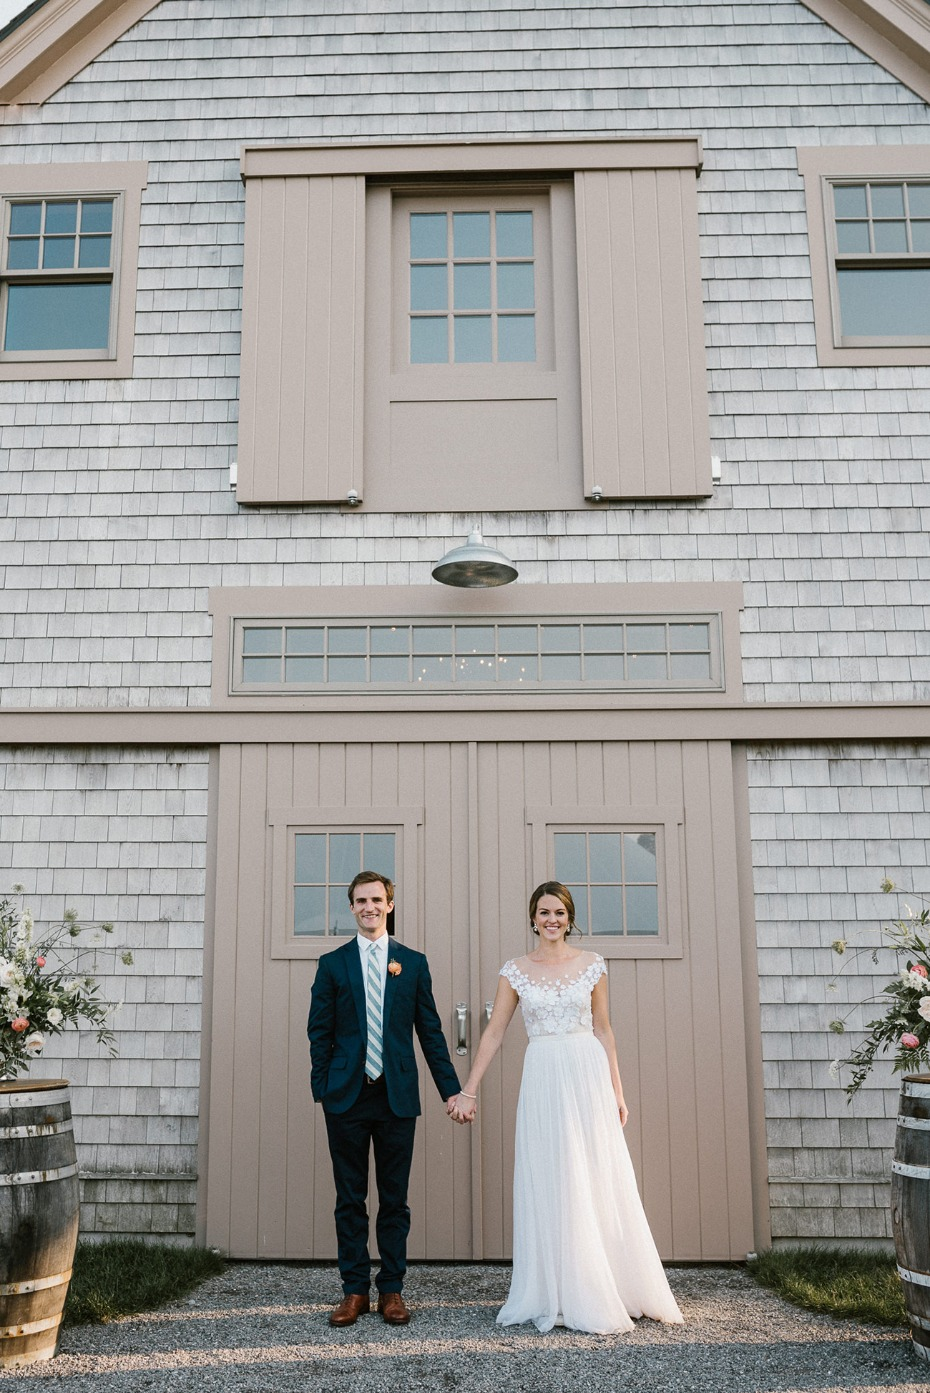 Beech Hill Barn wedding venue is Maine